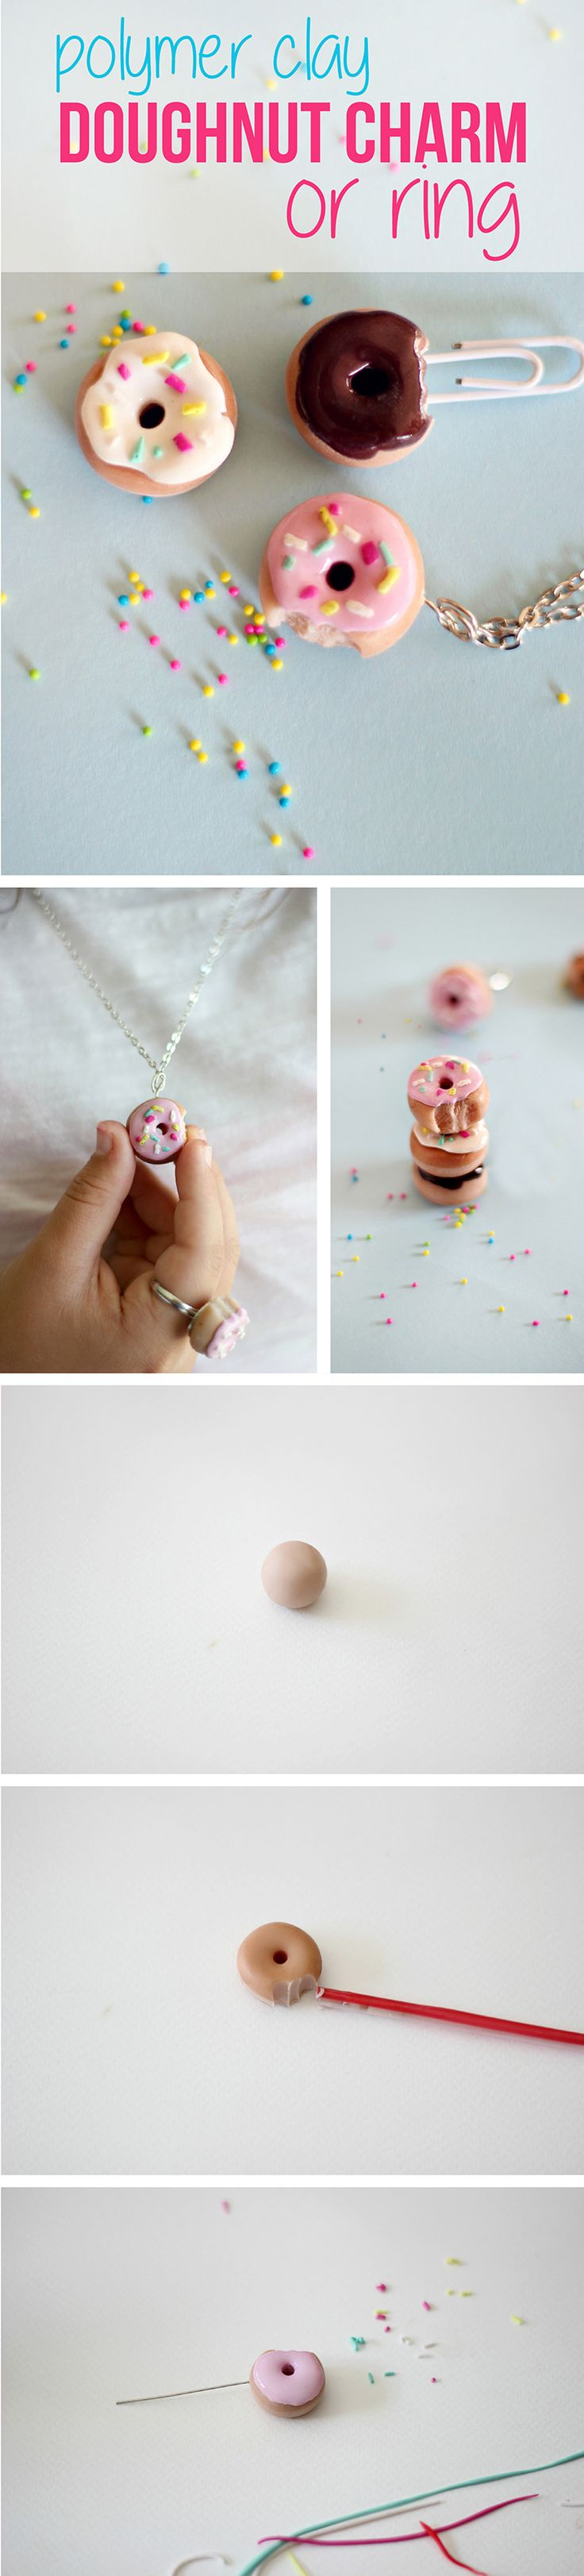 Miniature doughnuts are the cutest accessory we've ever seen! AND you can make this yourself? We're in cutesy crafting heaven with this one. How to make these adorable charms for necklaces or rings with polymer clay: http://www.ehow.com/ehow-crafts/blog/how-to-make-a-polymer-clay-doughnut-charm-or-ring/?utm_source=pinterest.com&utm_medium=referral&utm_content=blog&utm_campaign=fanpage